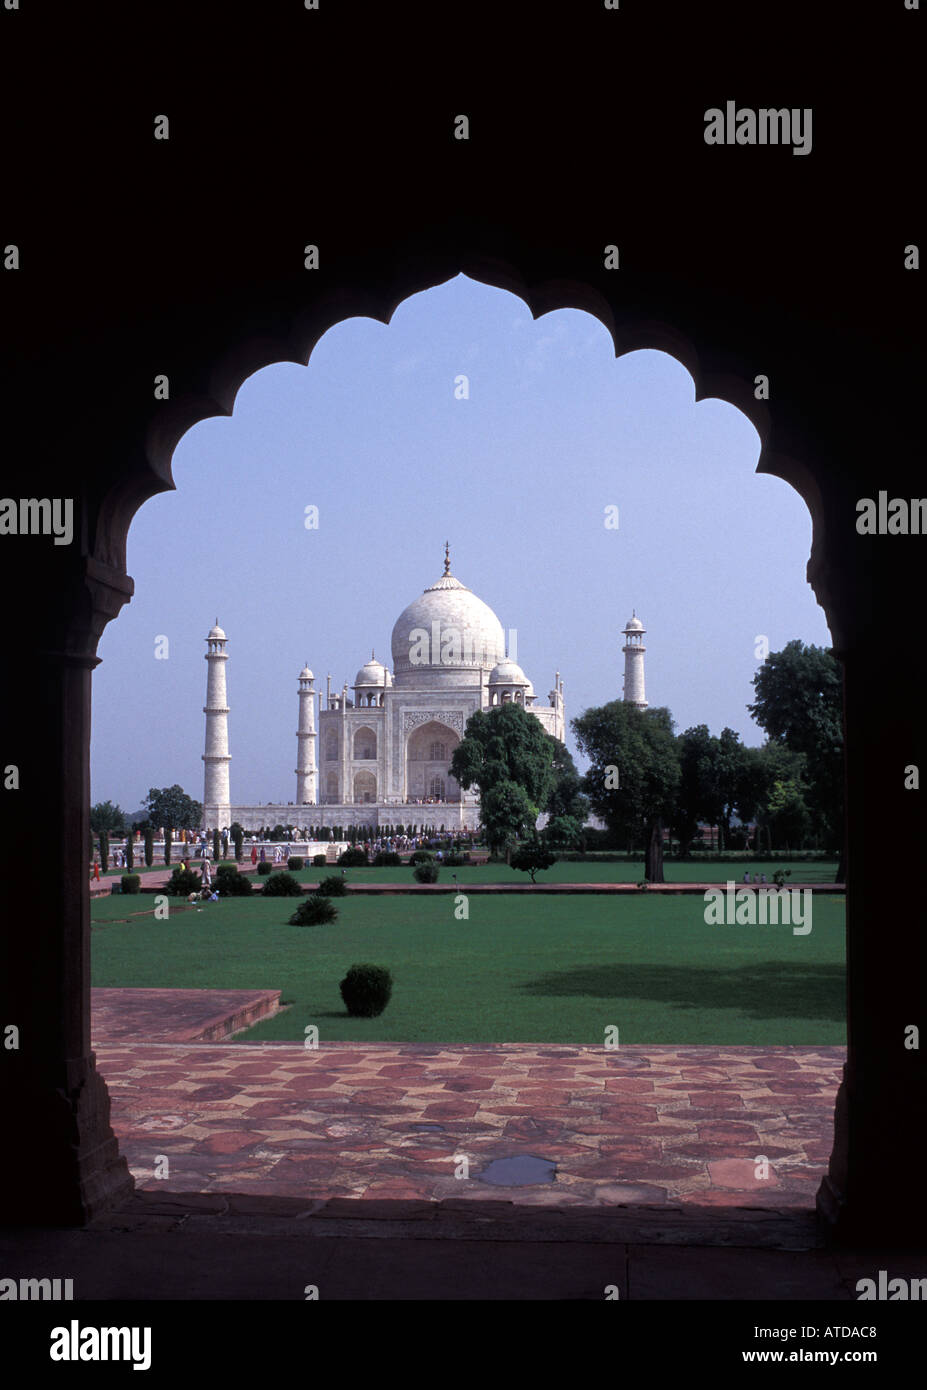 Taj Mahal framed by the scalloped archway of the corridor to the side of the entrance gateway Agra India - Stock Image